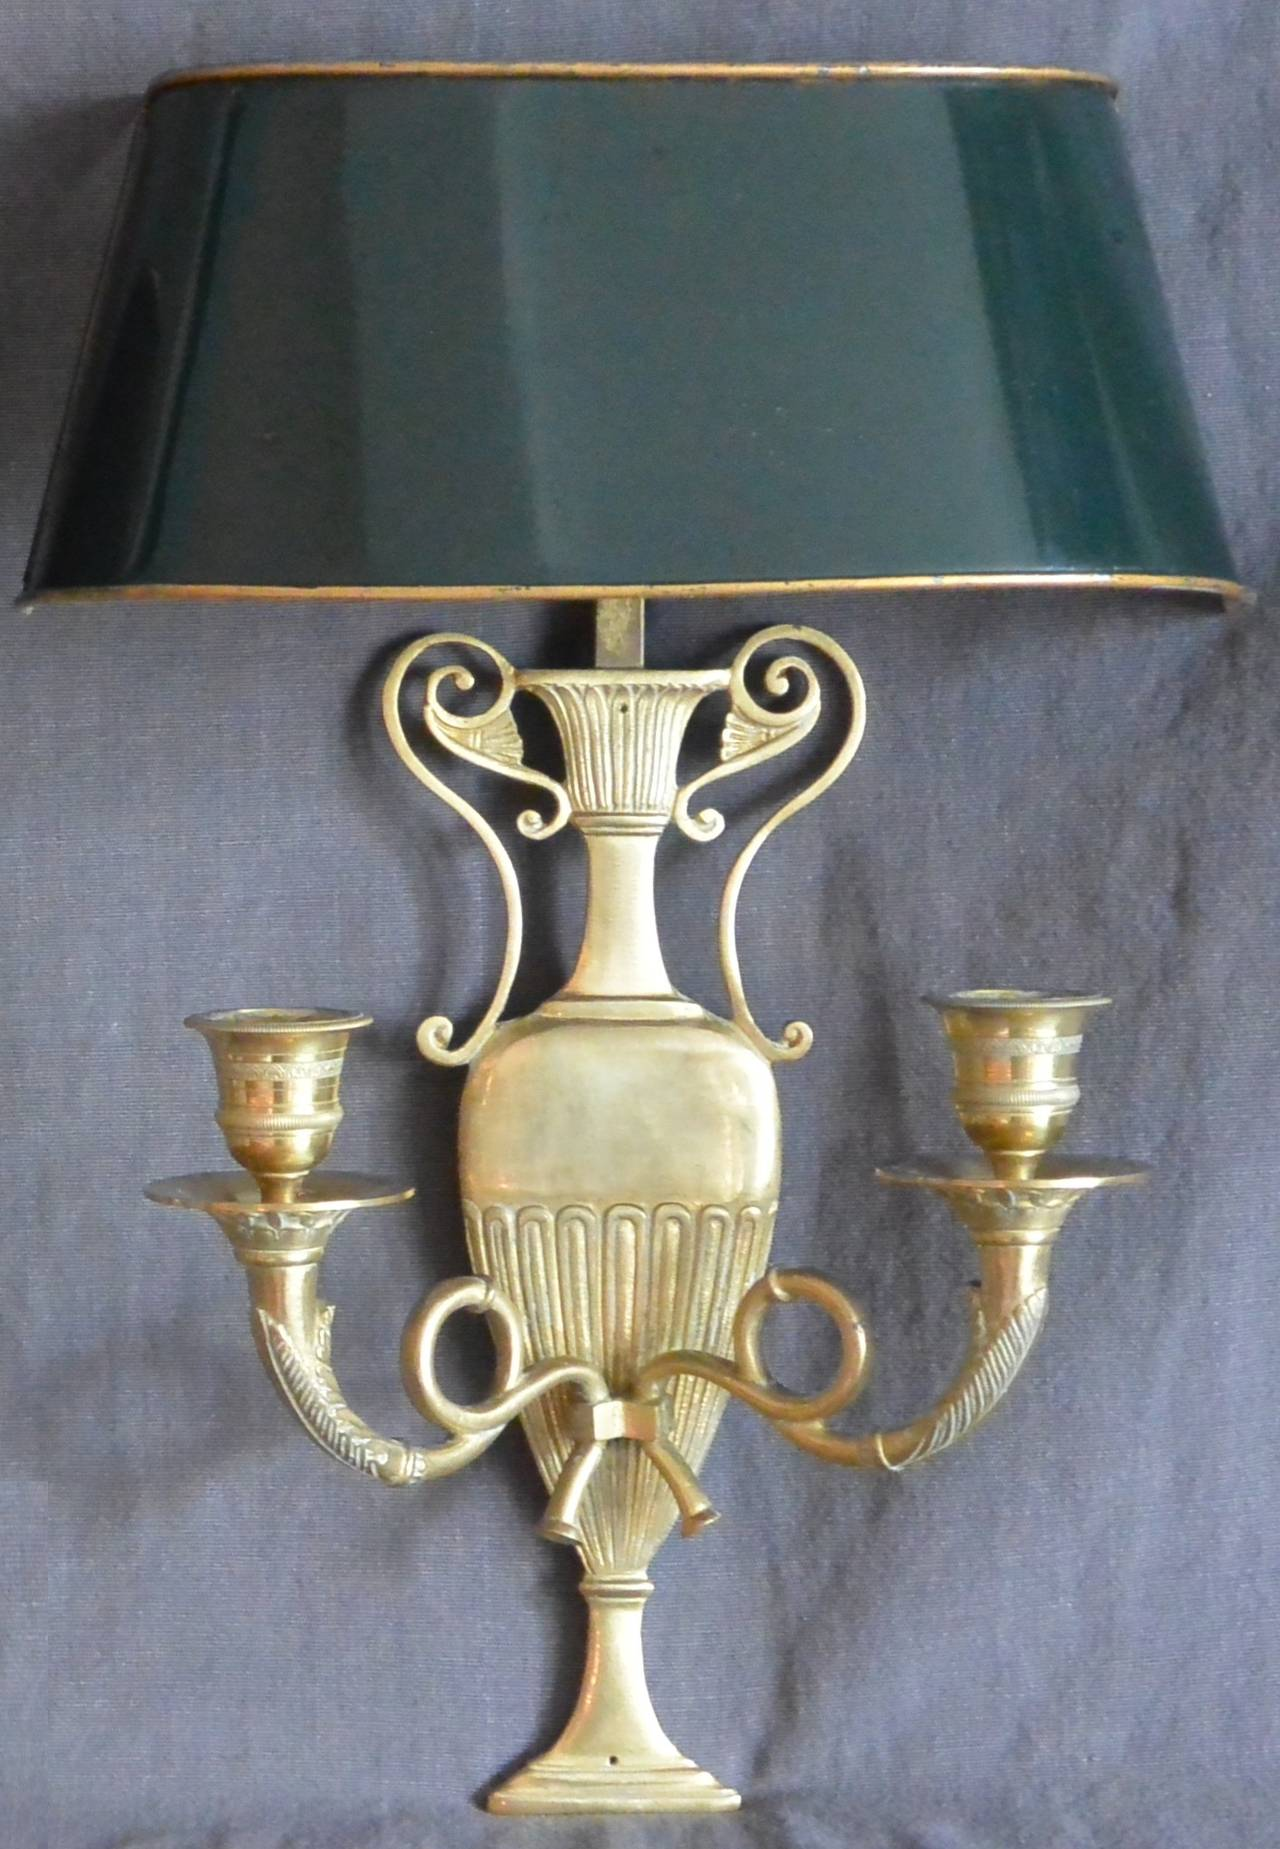 Pair Of French Sconces With Tole Shades For Sale At 1stdibs